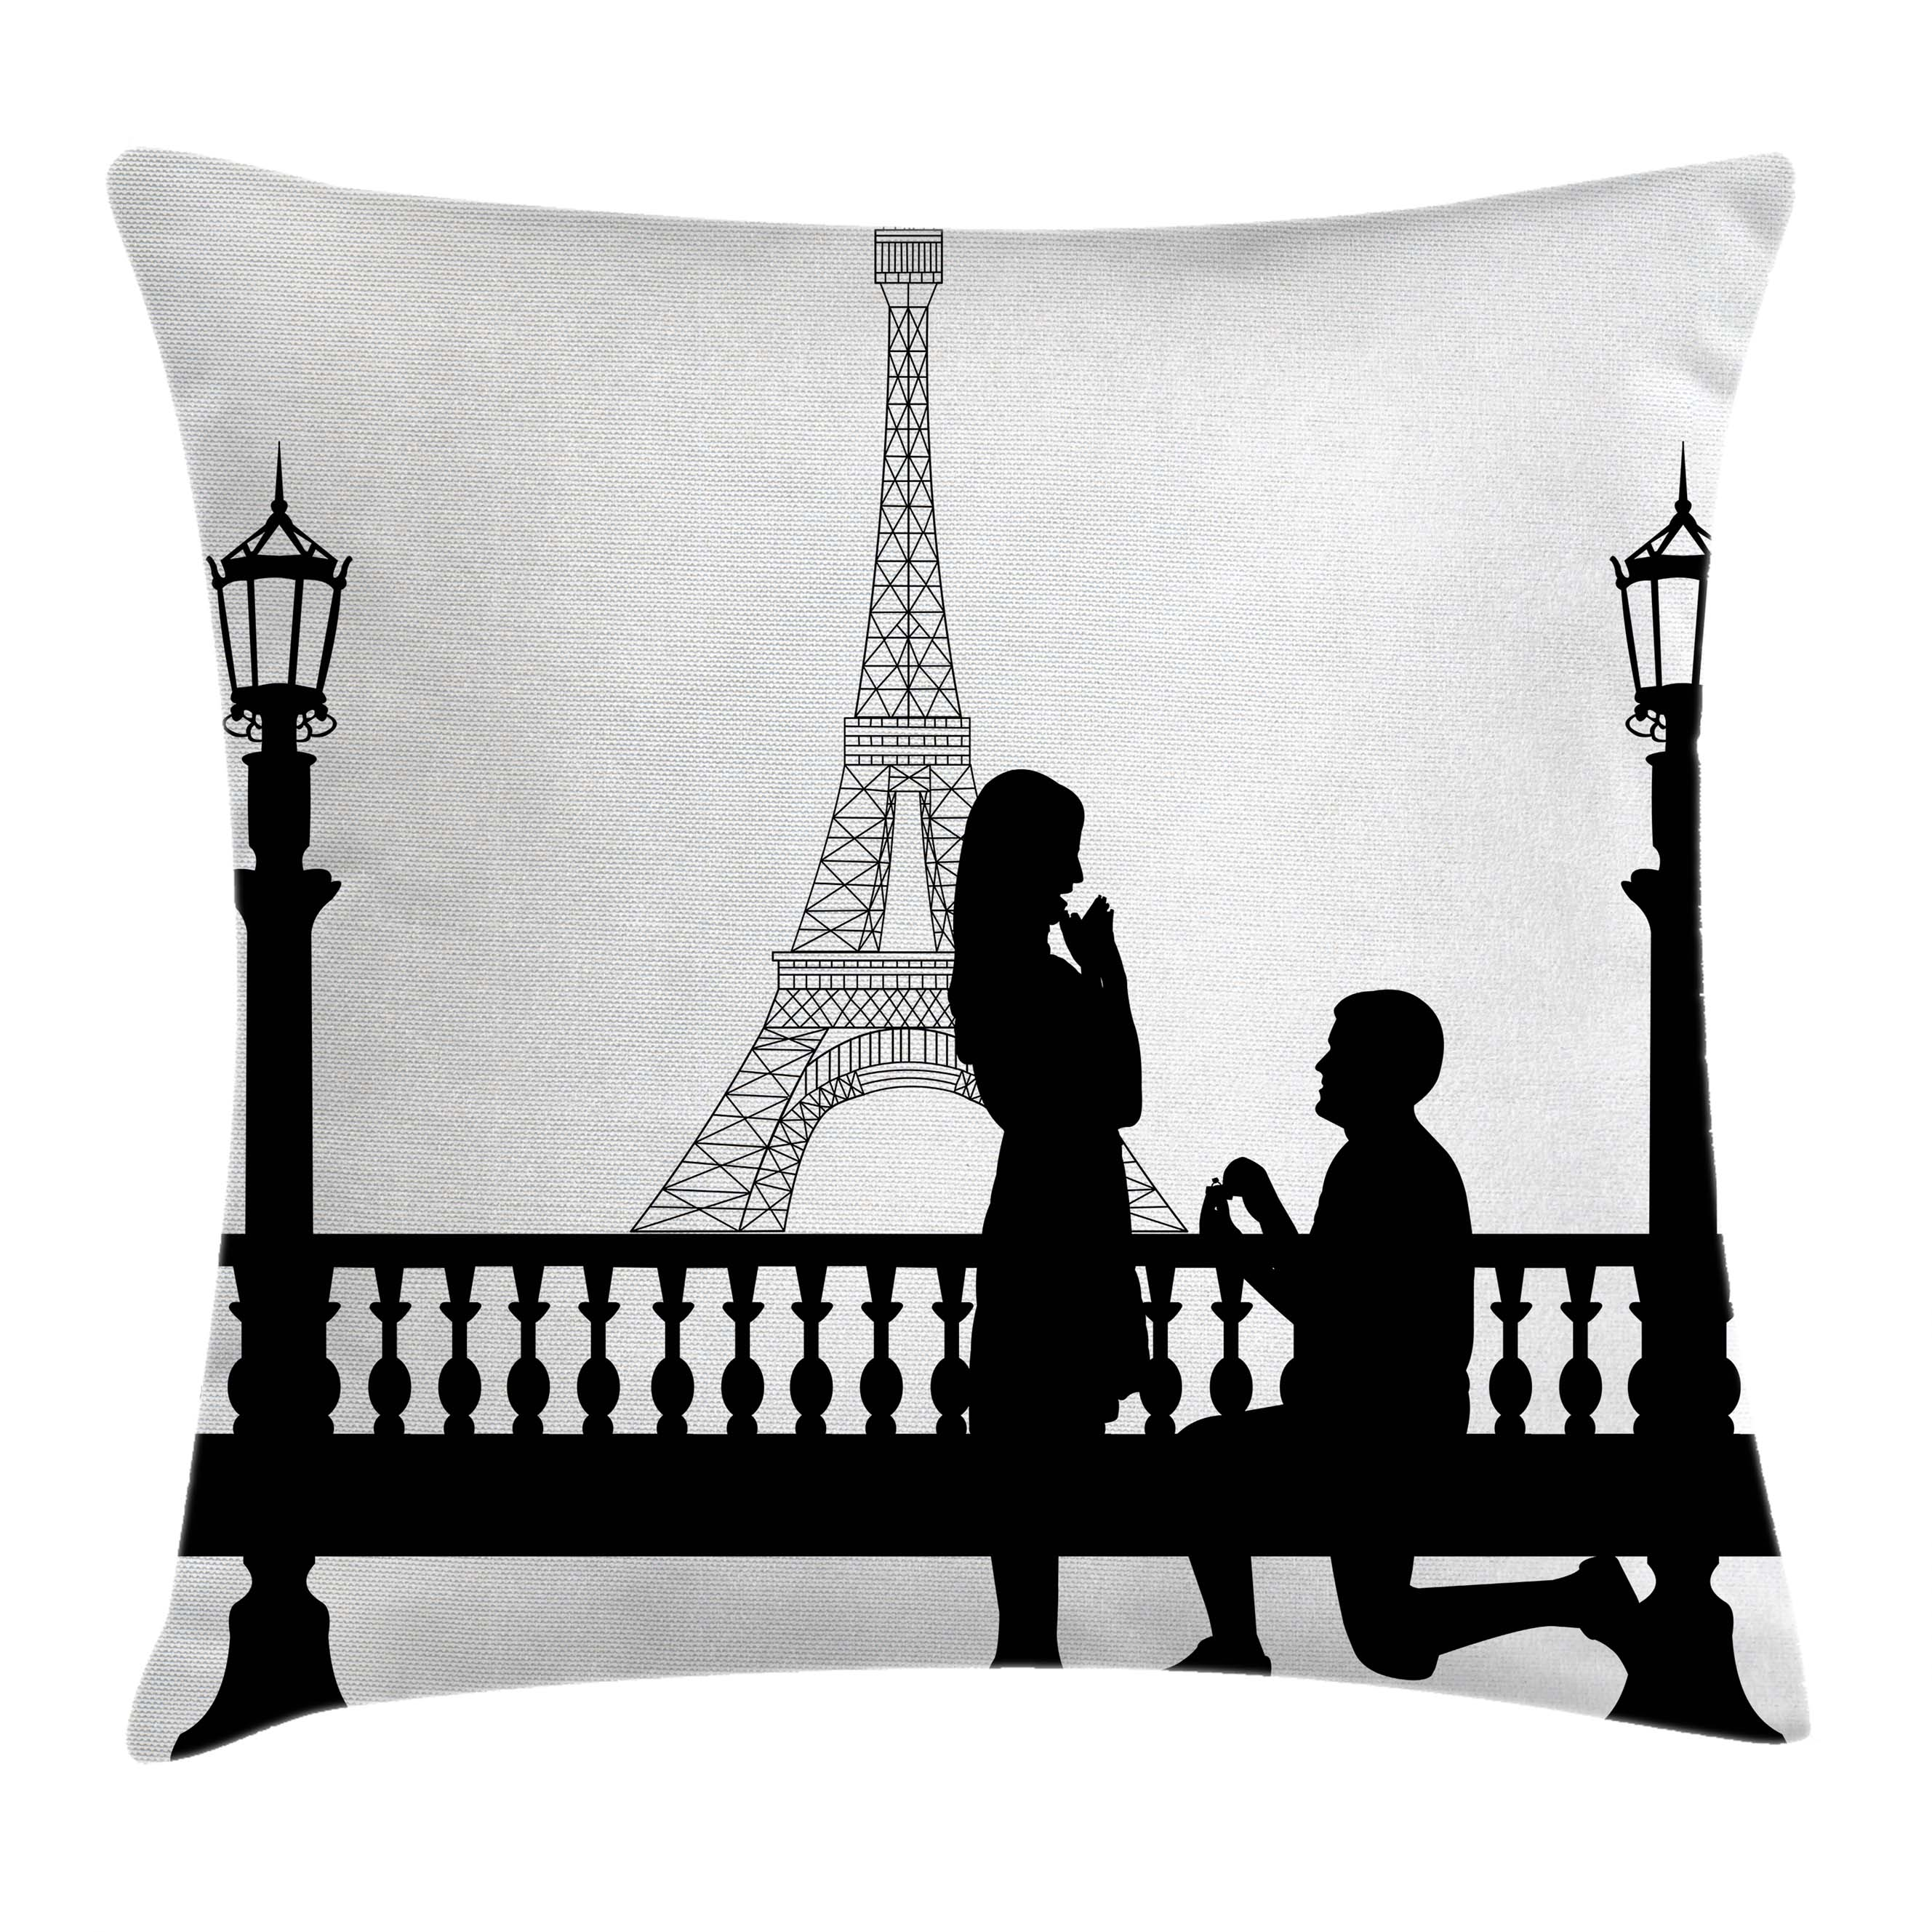 Engagement Party Decorations Throw Pillow Cushion Cover, Paris Lovers City Wedding Proposal for Great Future Image, Decorative Square Accent Pillow Case, 16 X 16 Inches, Black and White, by Ambesonne